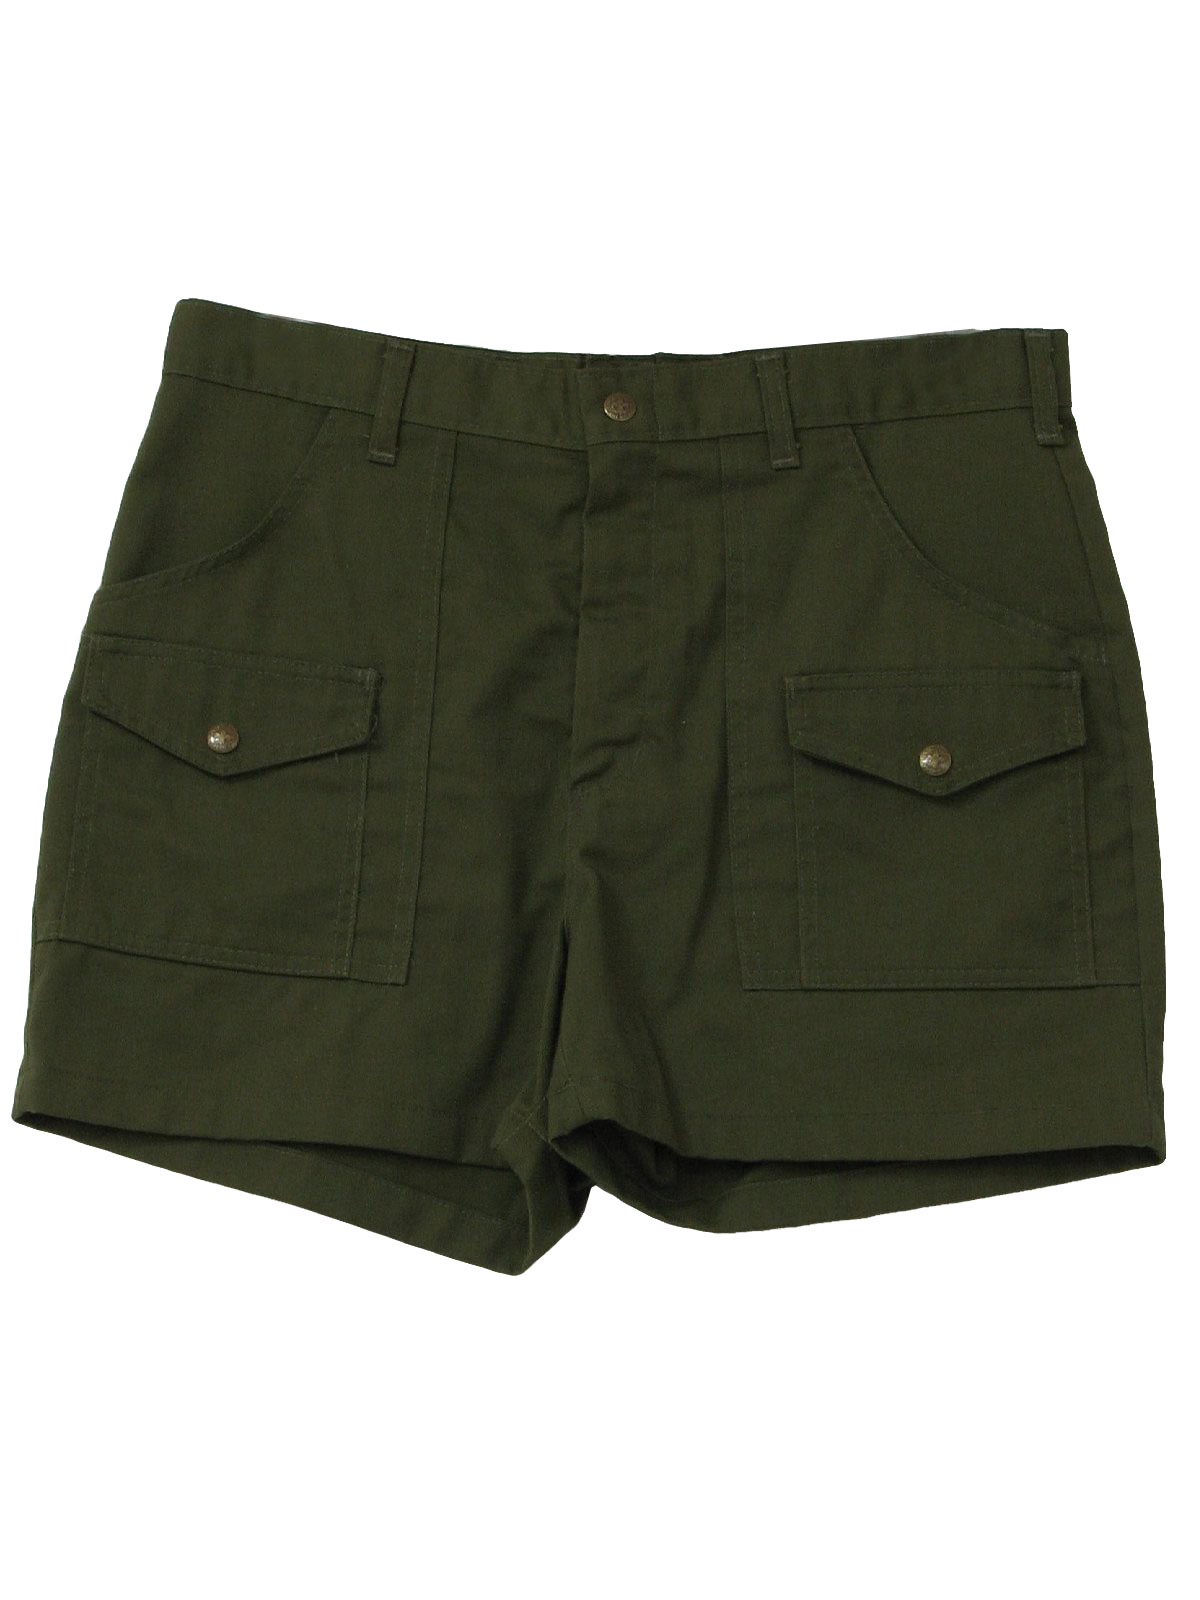 df4887b43 Boy Scouts of America 70's Vintage Shorts: 70s -Boy Scouts of ...